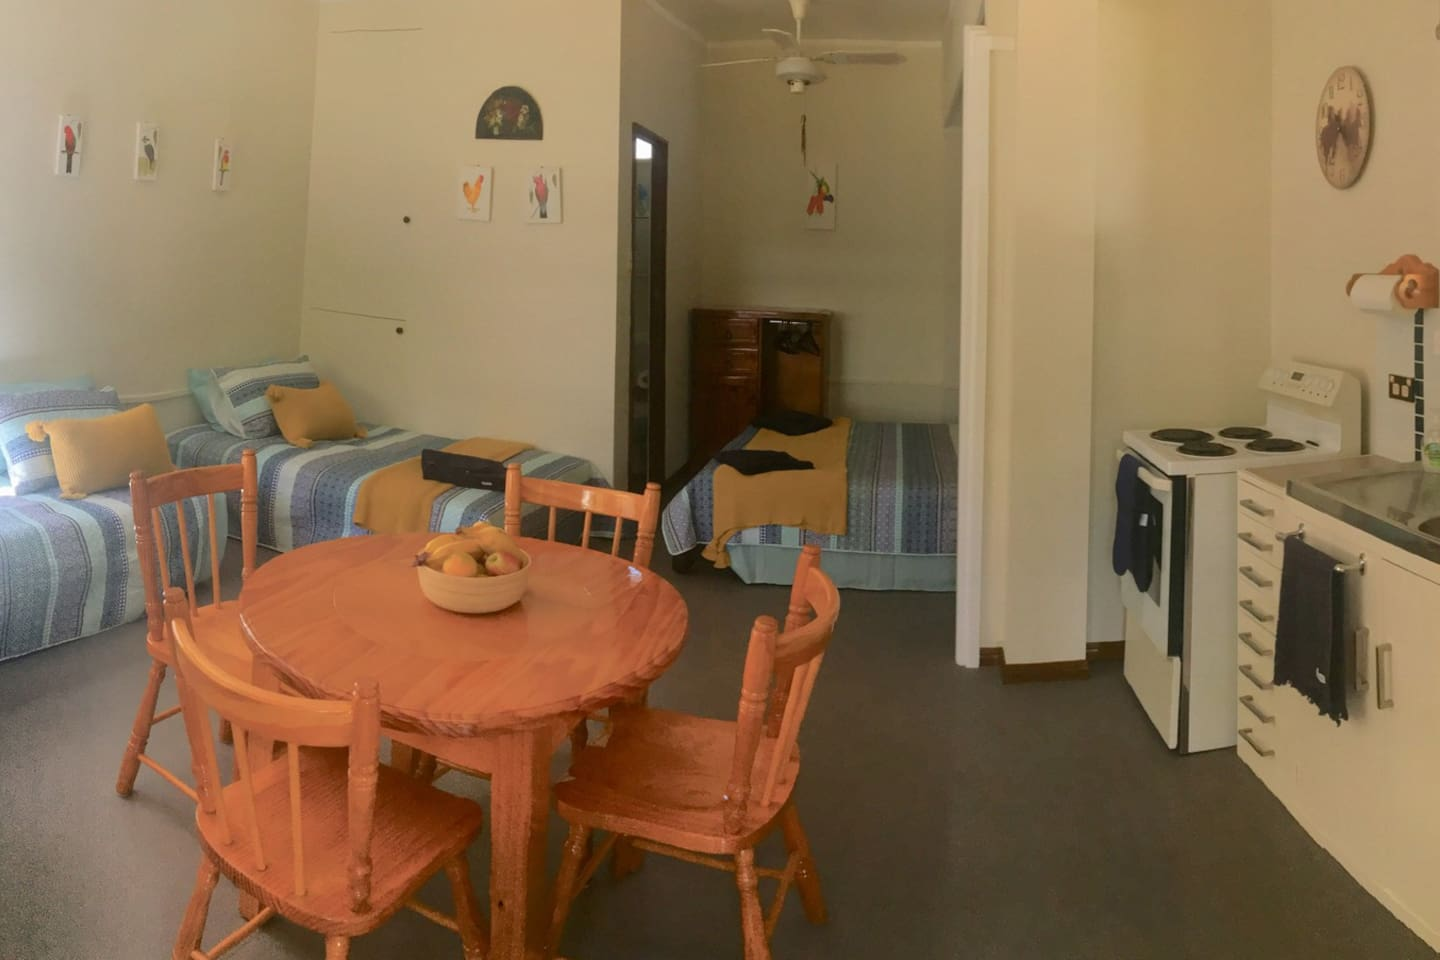 Granny Flat set up for 4 adults only